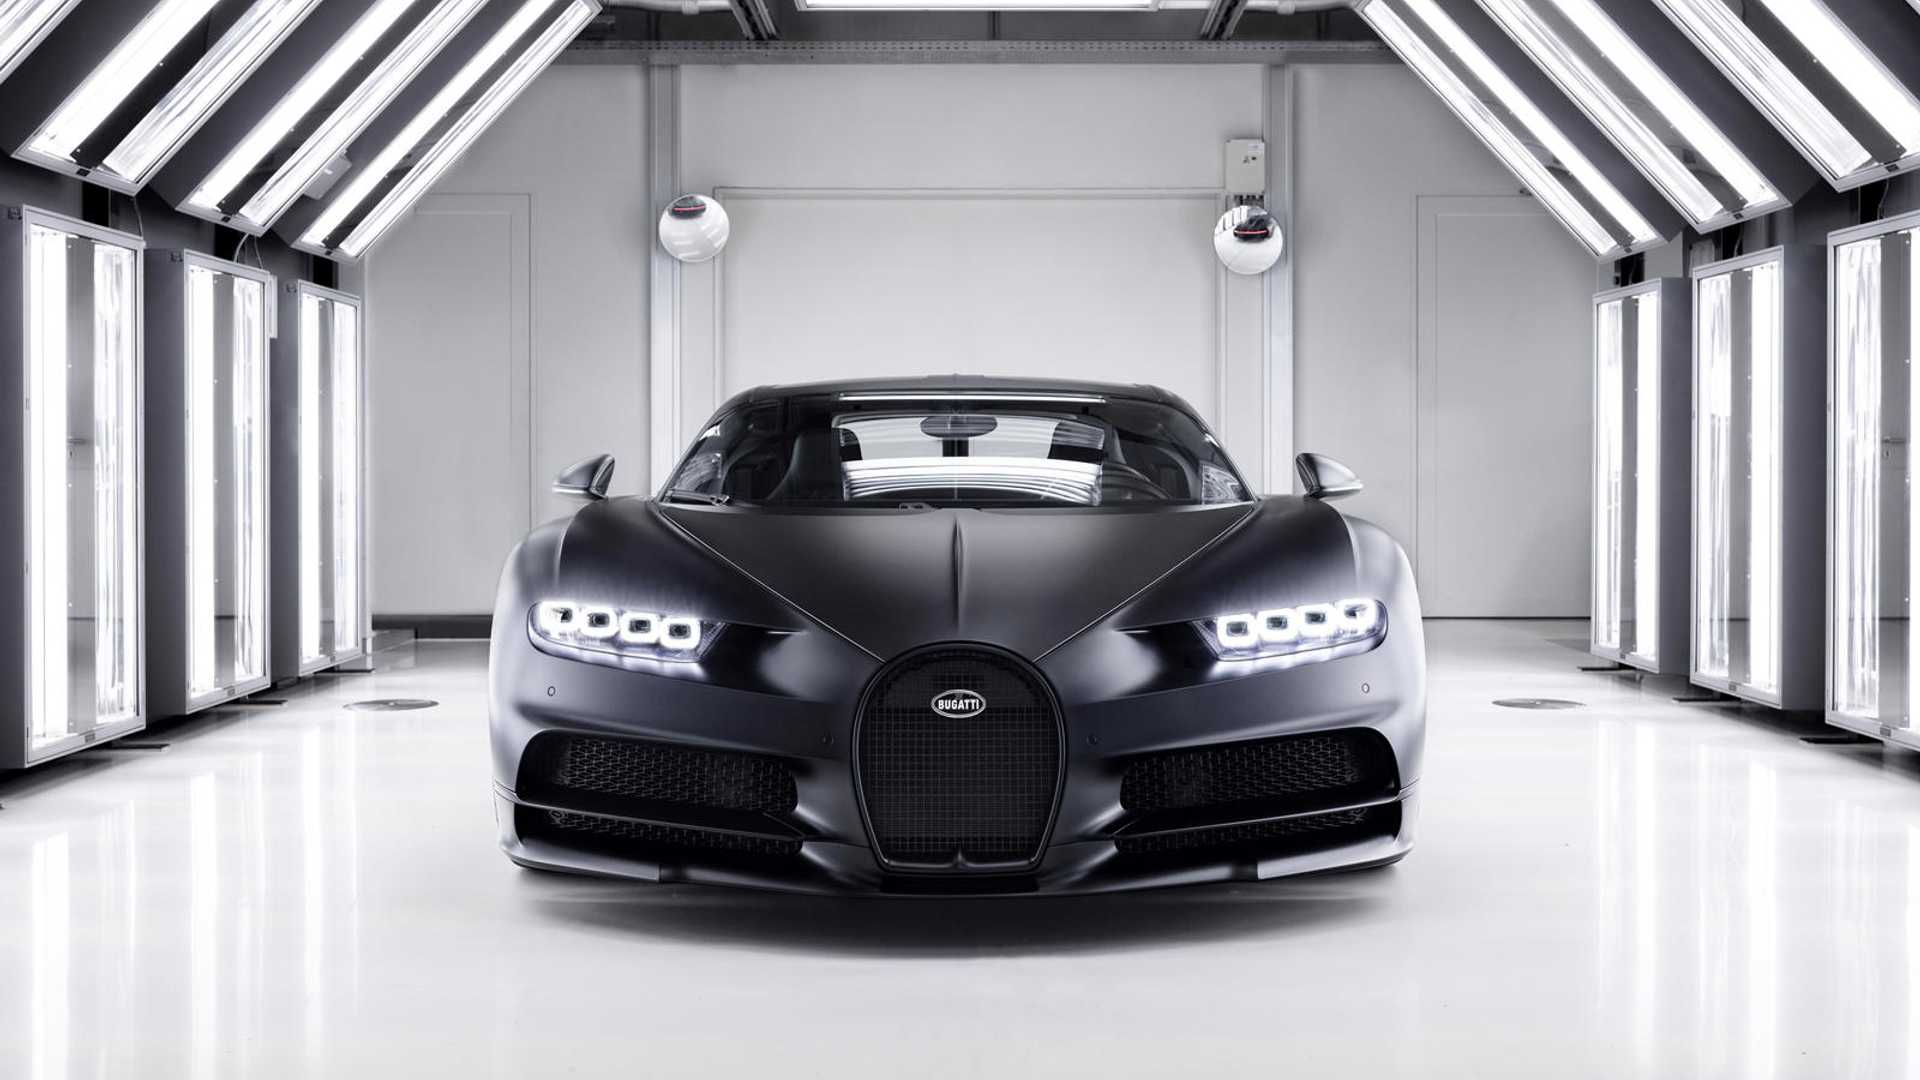 2020 Bugatti Chiron Noire Sportive Wallpapers